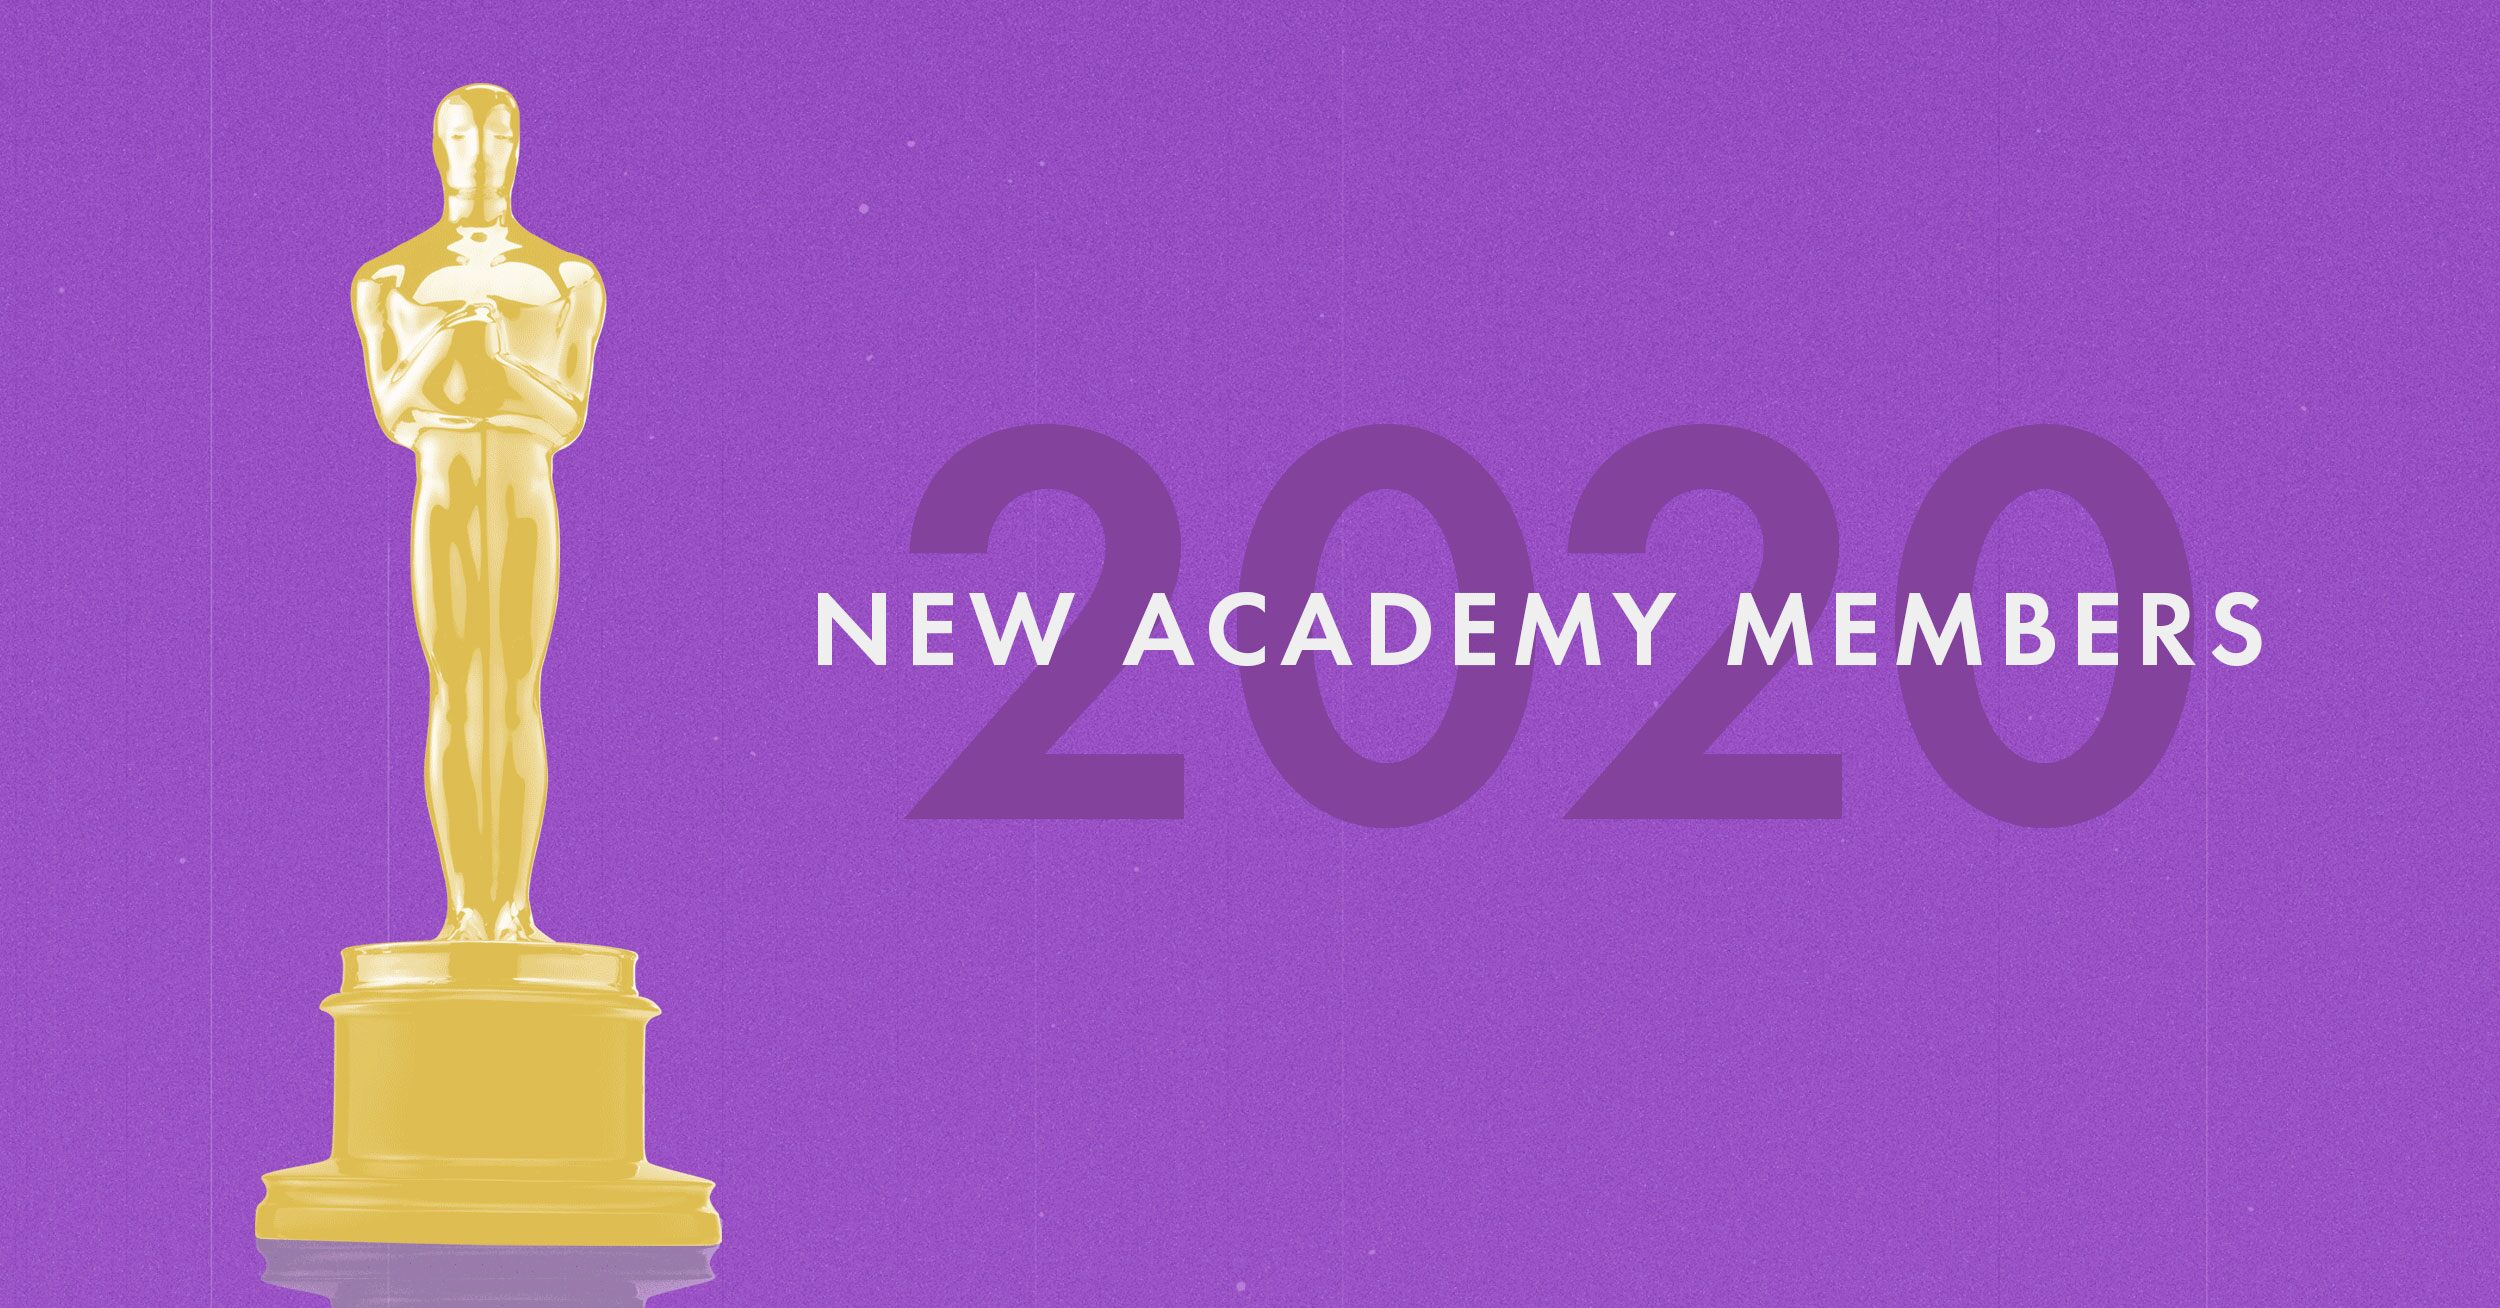 Academy Invites 819 To Membership Oscars Org Academy Of Motion Picture Arts And Sciences Some swimming pool stories are set during the night. academy of motion picture arts and sciences